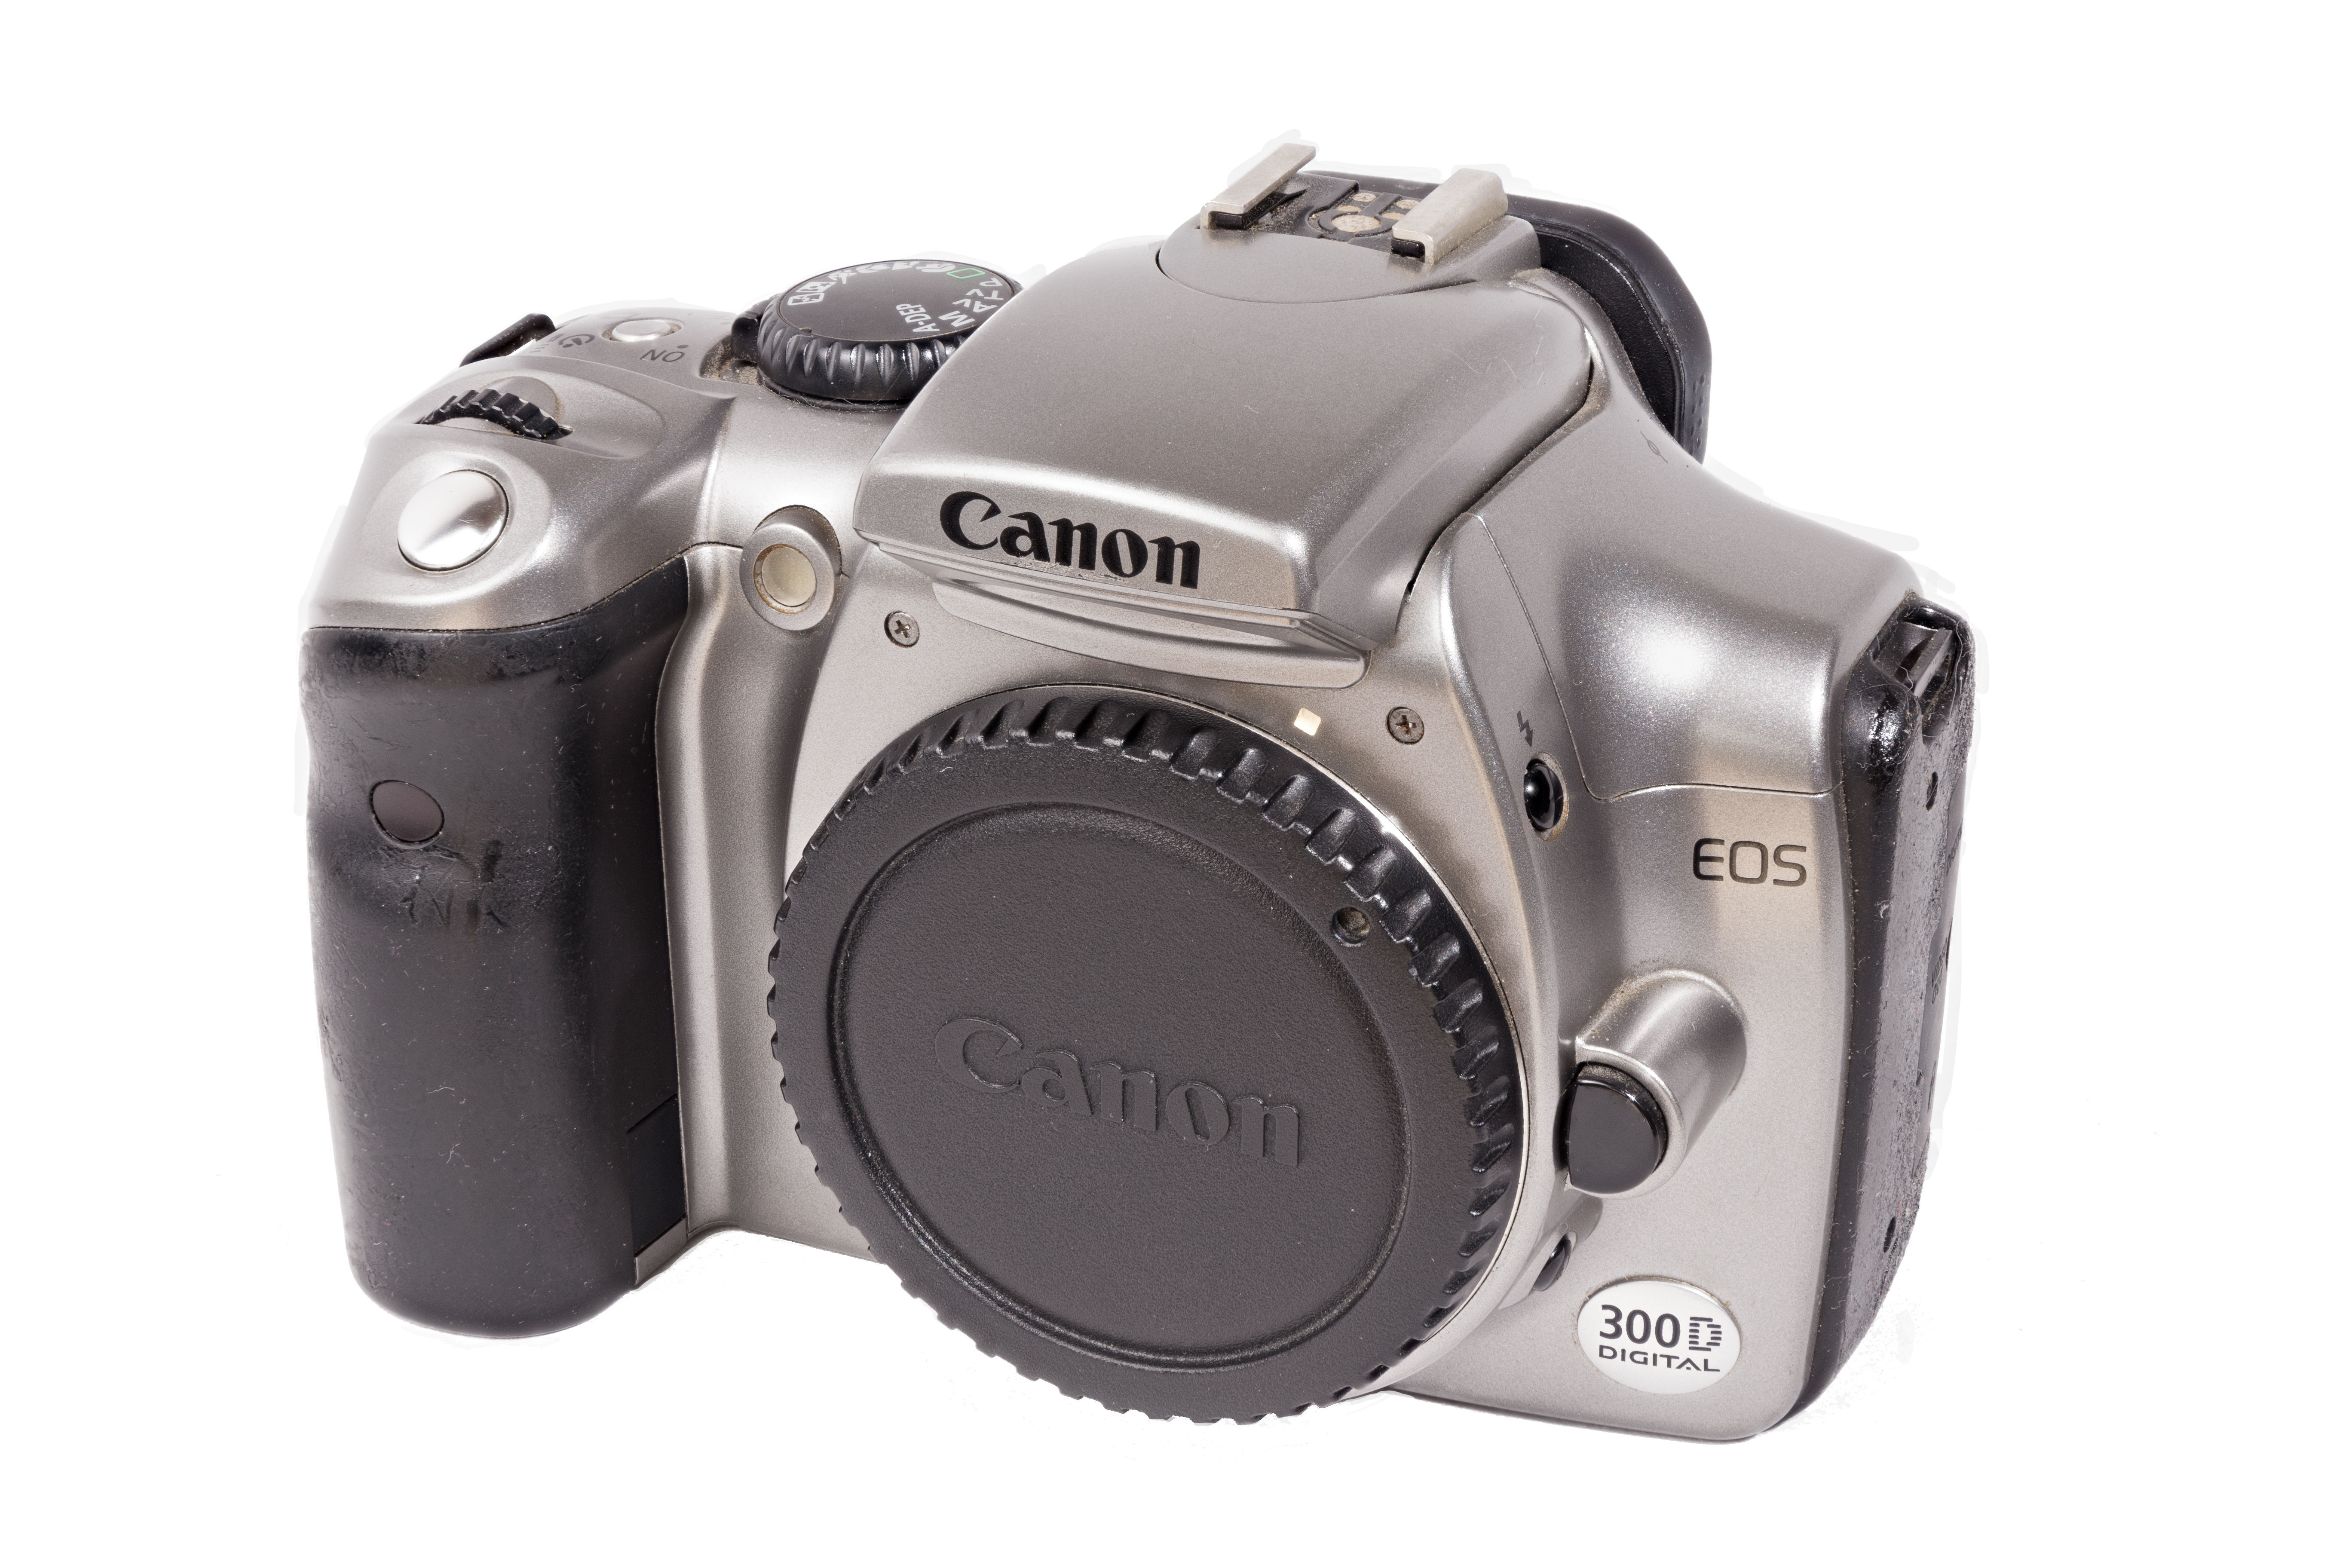 File:Canon EOS 300D, Front, 1803181552, ako.jpg